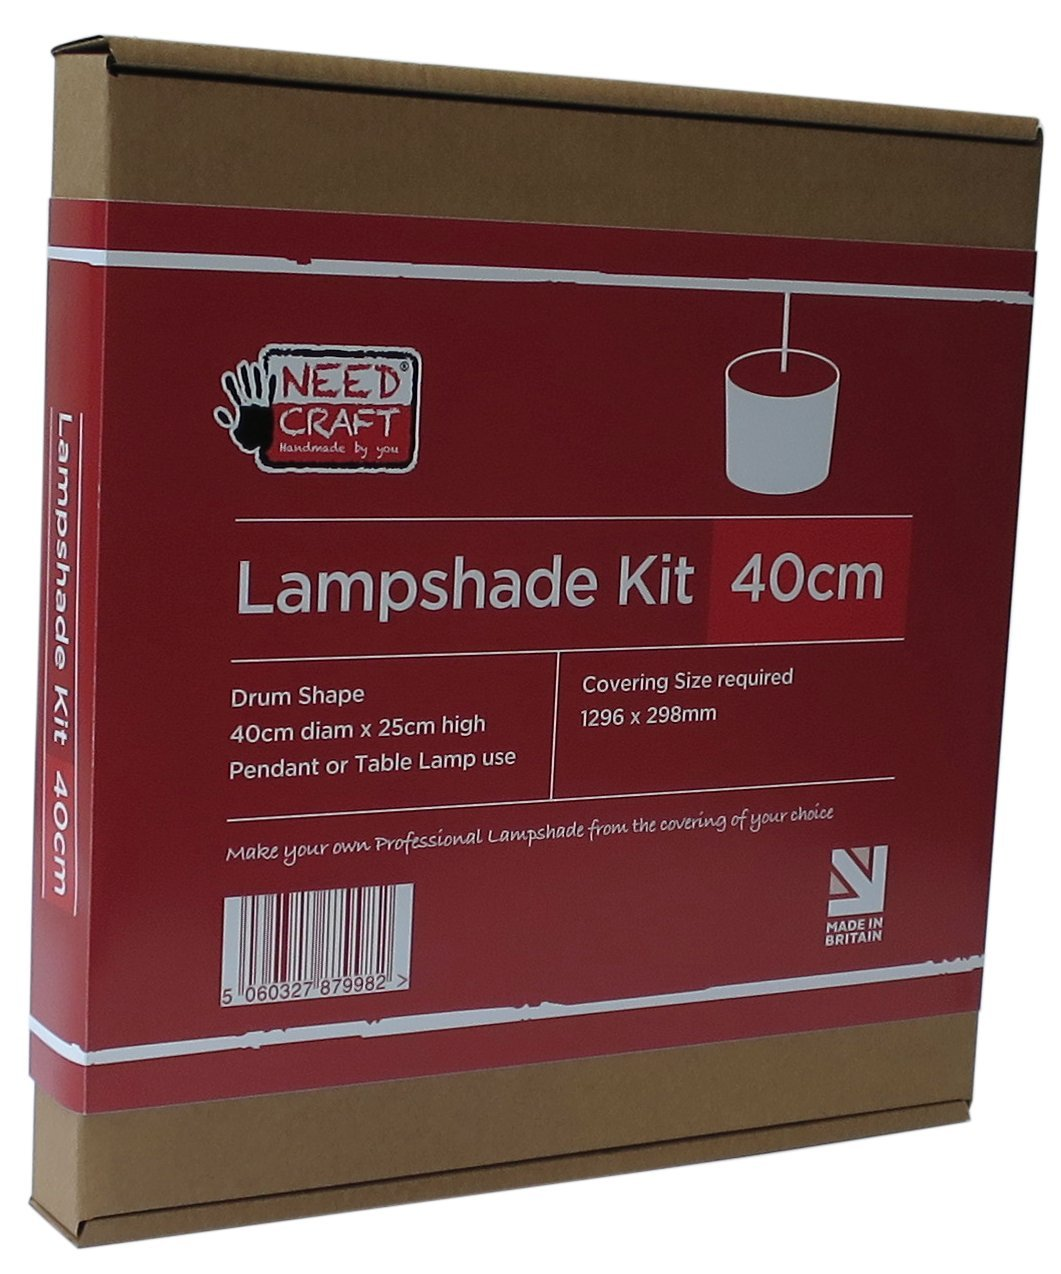 40cm Lampshade Making Kit for Pendants Or Table Lamps needcraft.co.uk